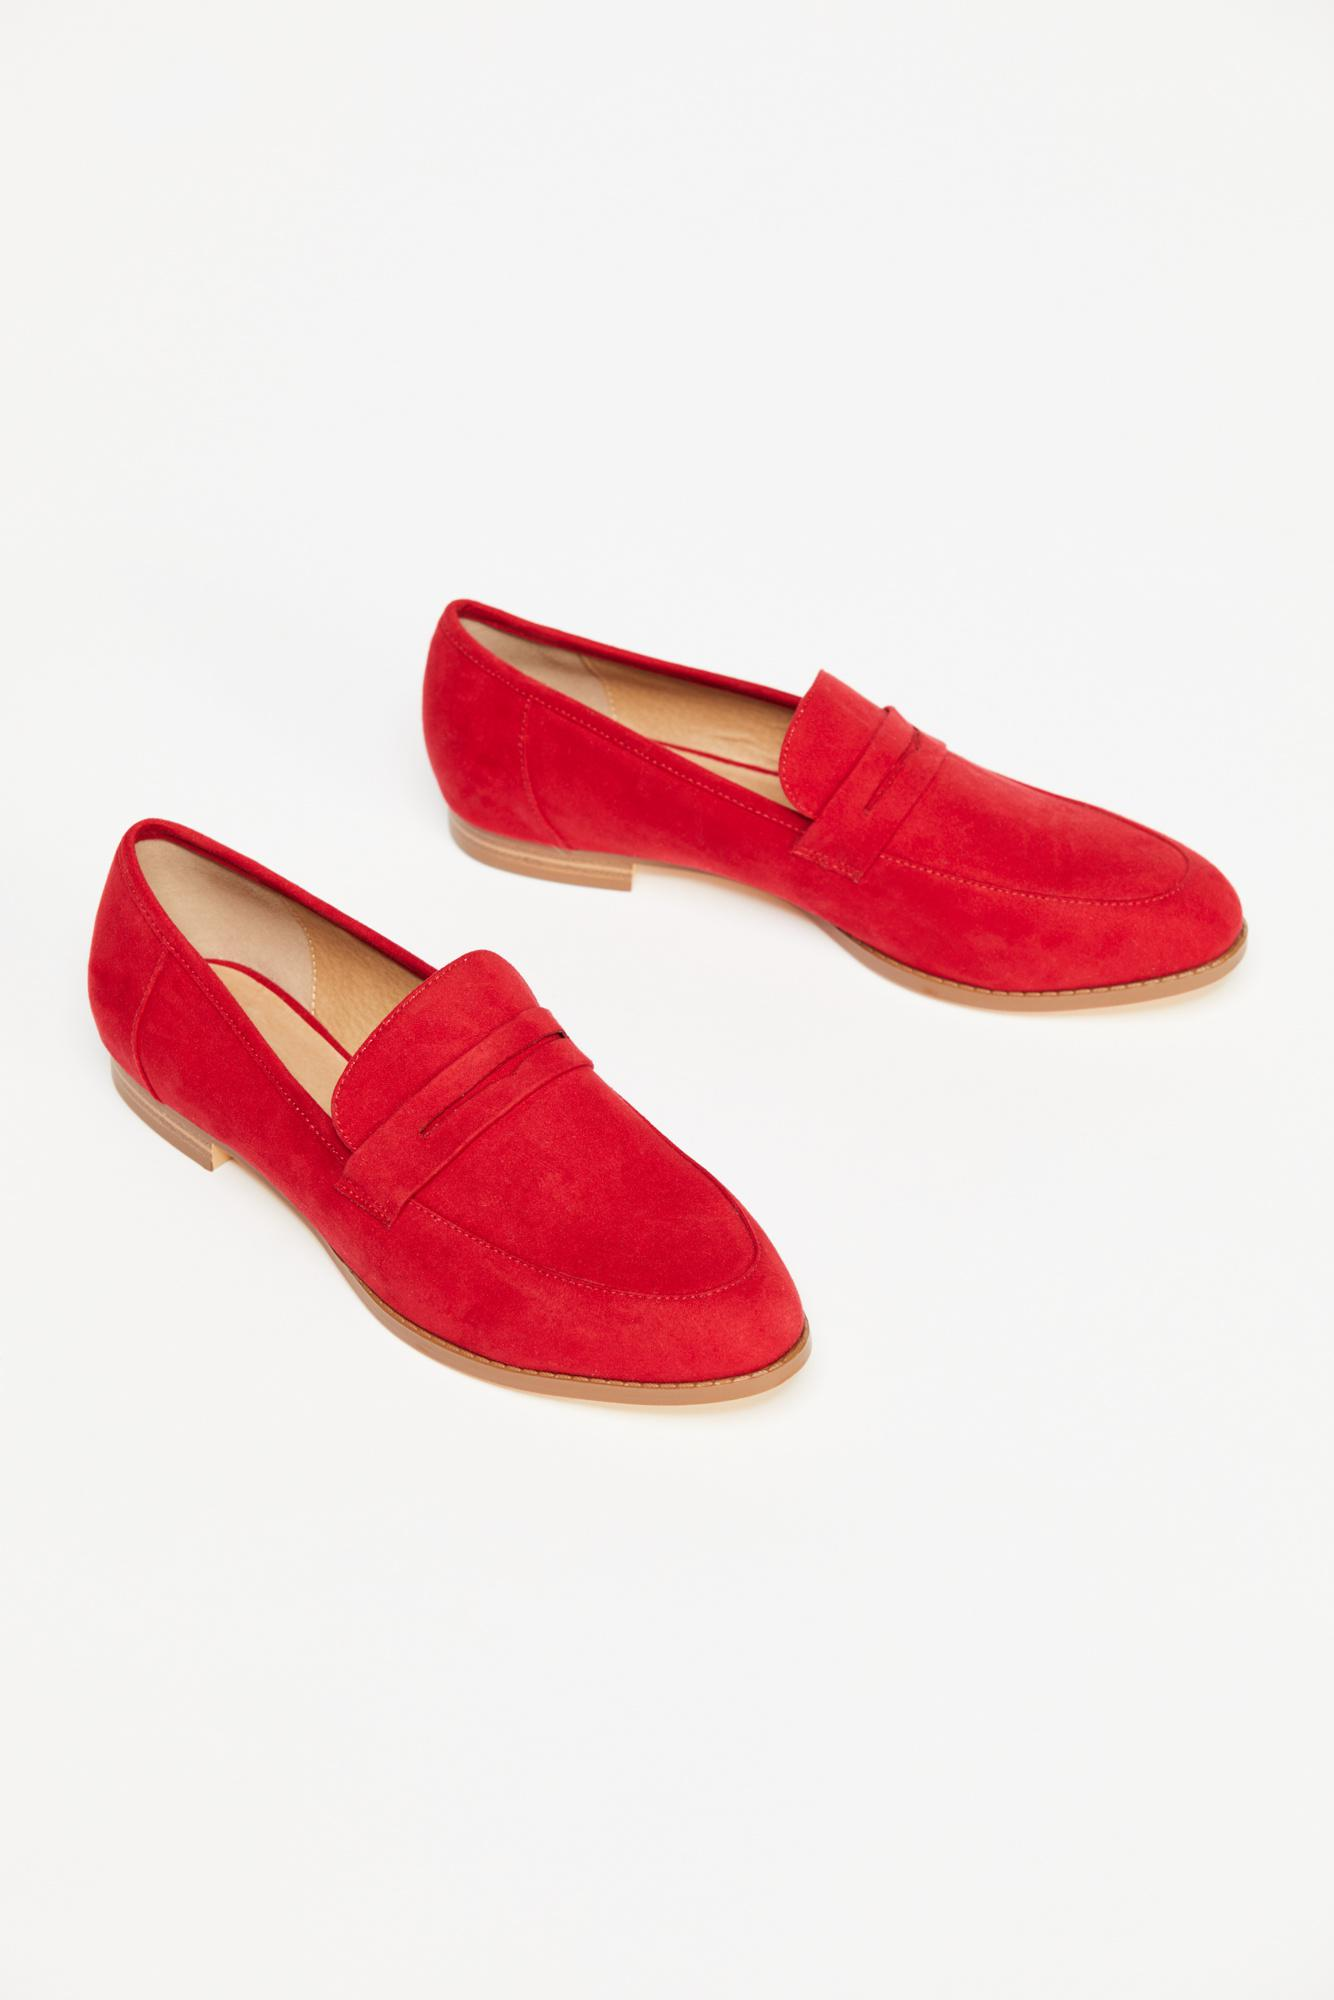 292e9b3c99c Lyst - Free People Lou Lou Penny Loafer By Restricted in Red